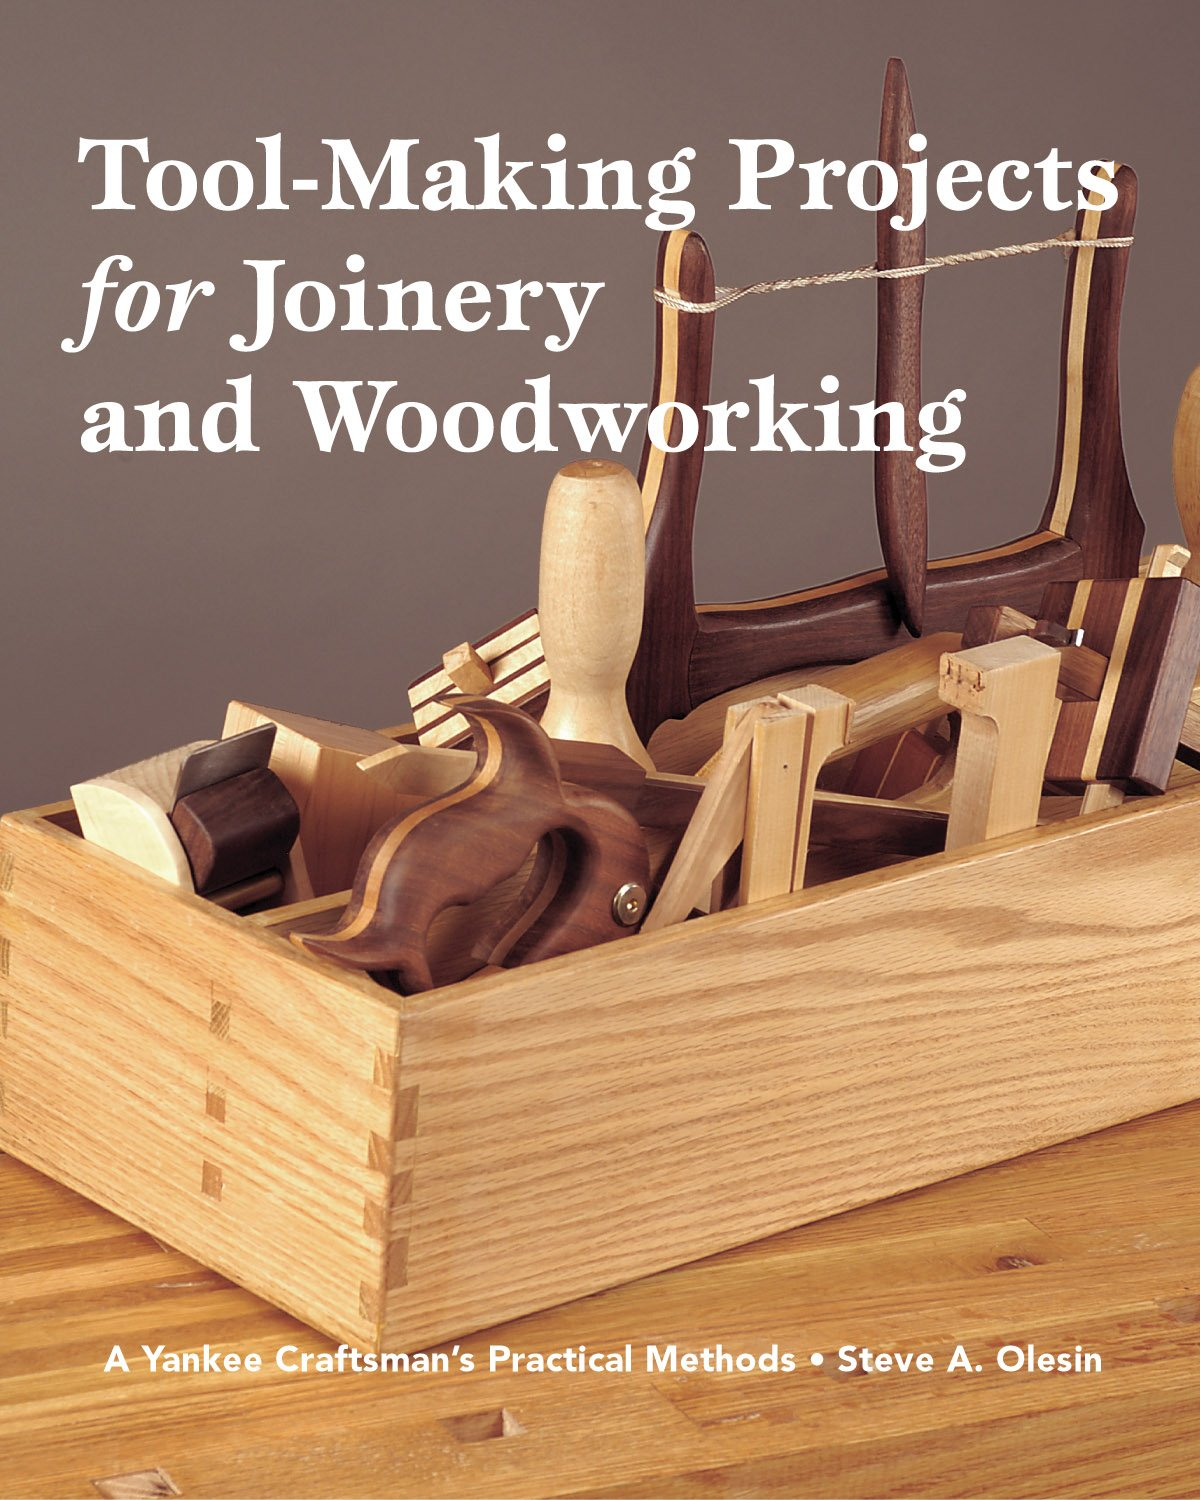 Tool Making Projects for Joinery & Woodworking: A Yankee Craftsman's Practical Methods PDF